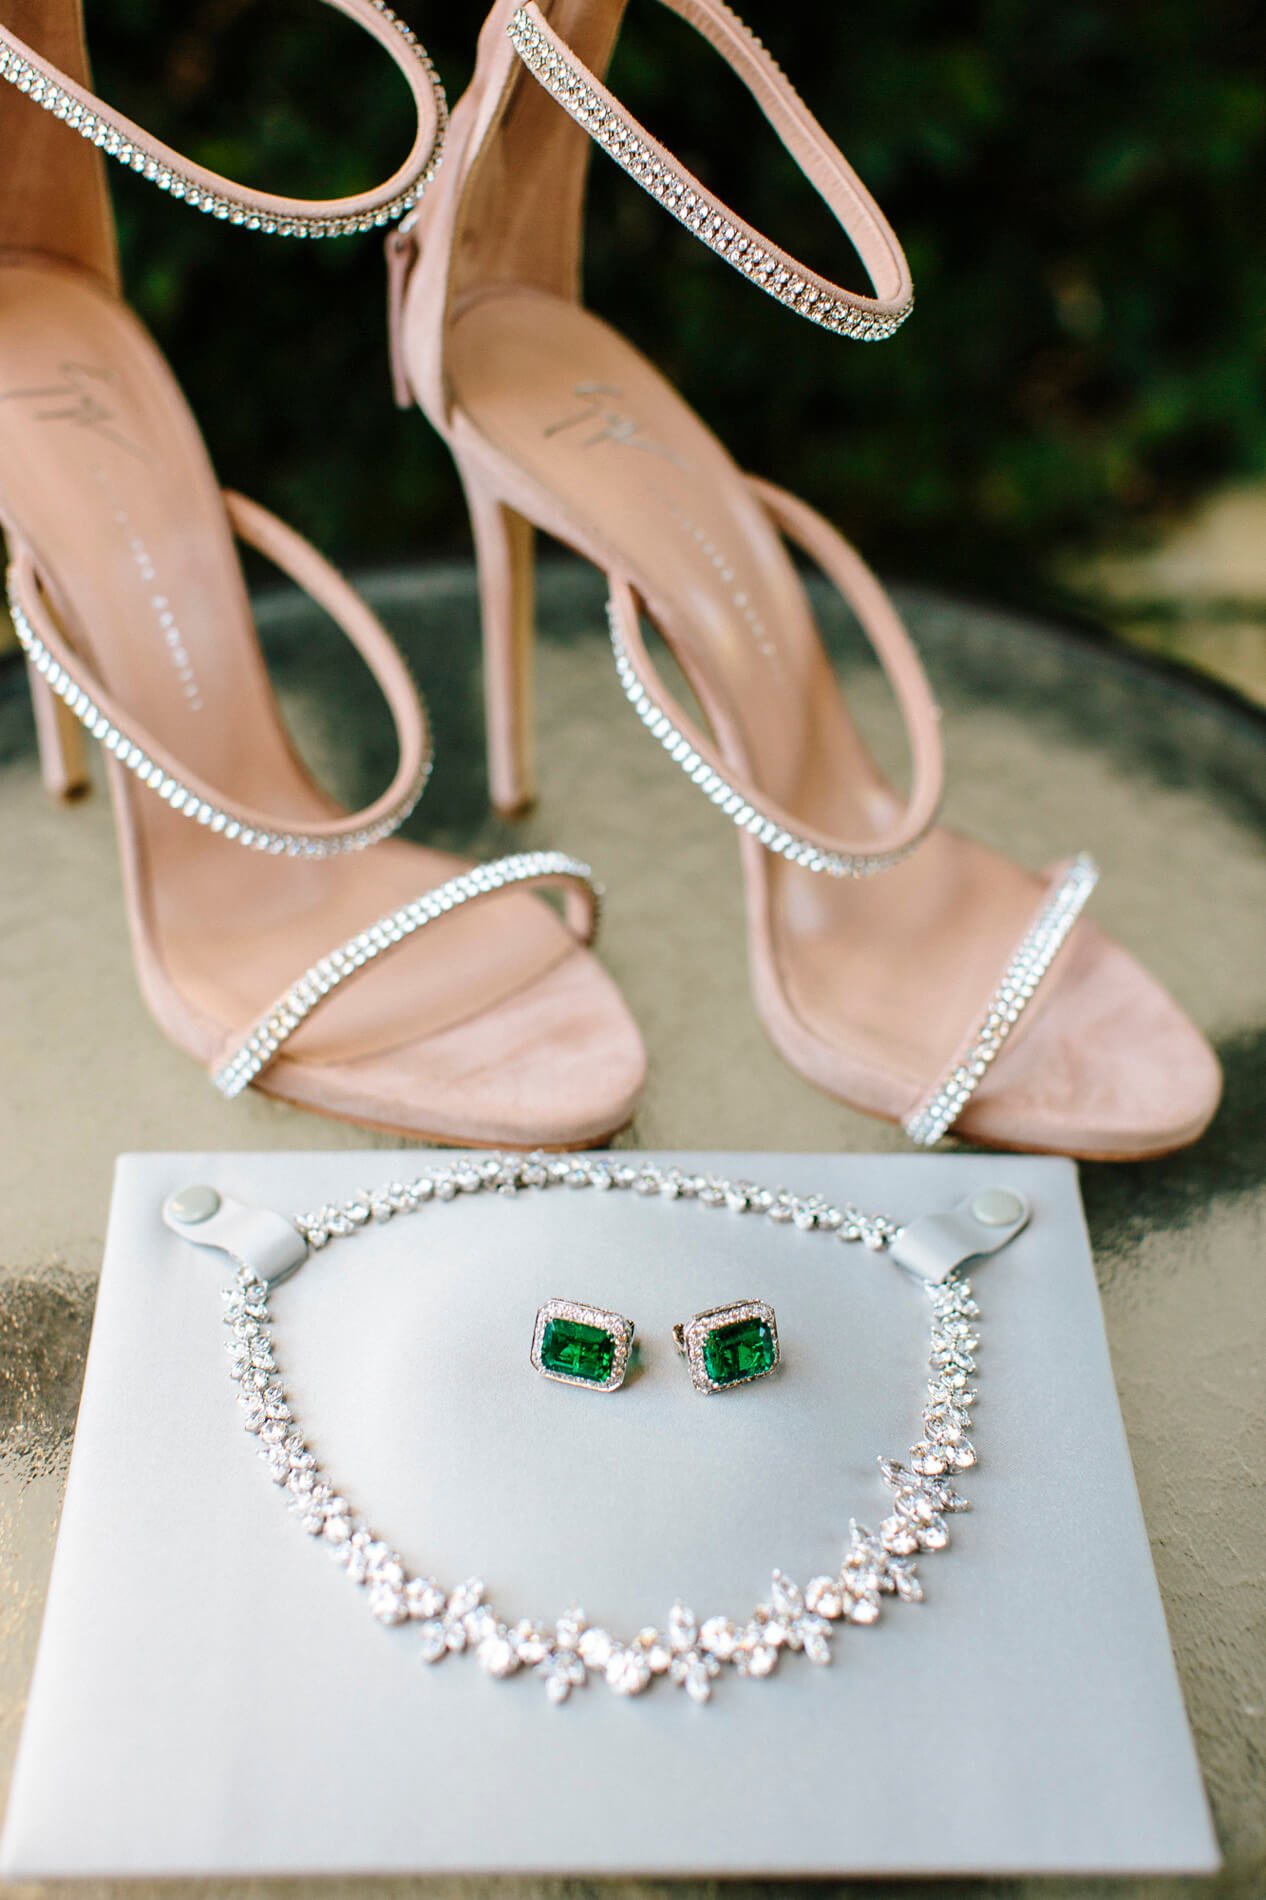 shoes and jewelry hilton la jolla torrey pines